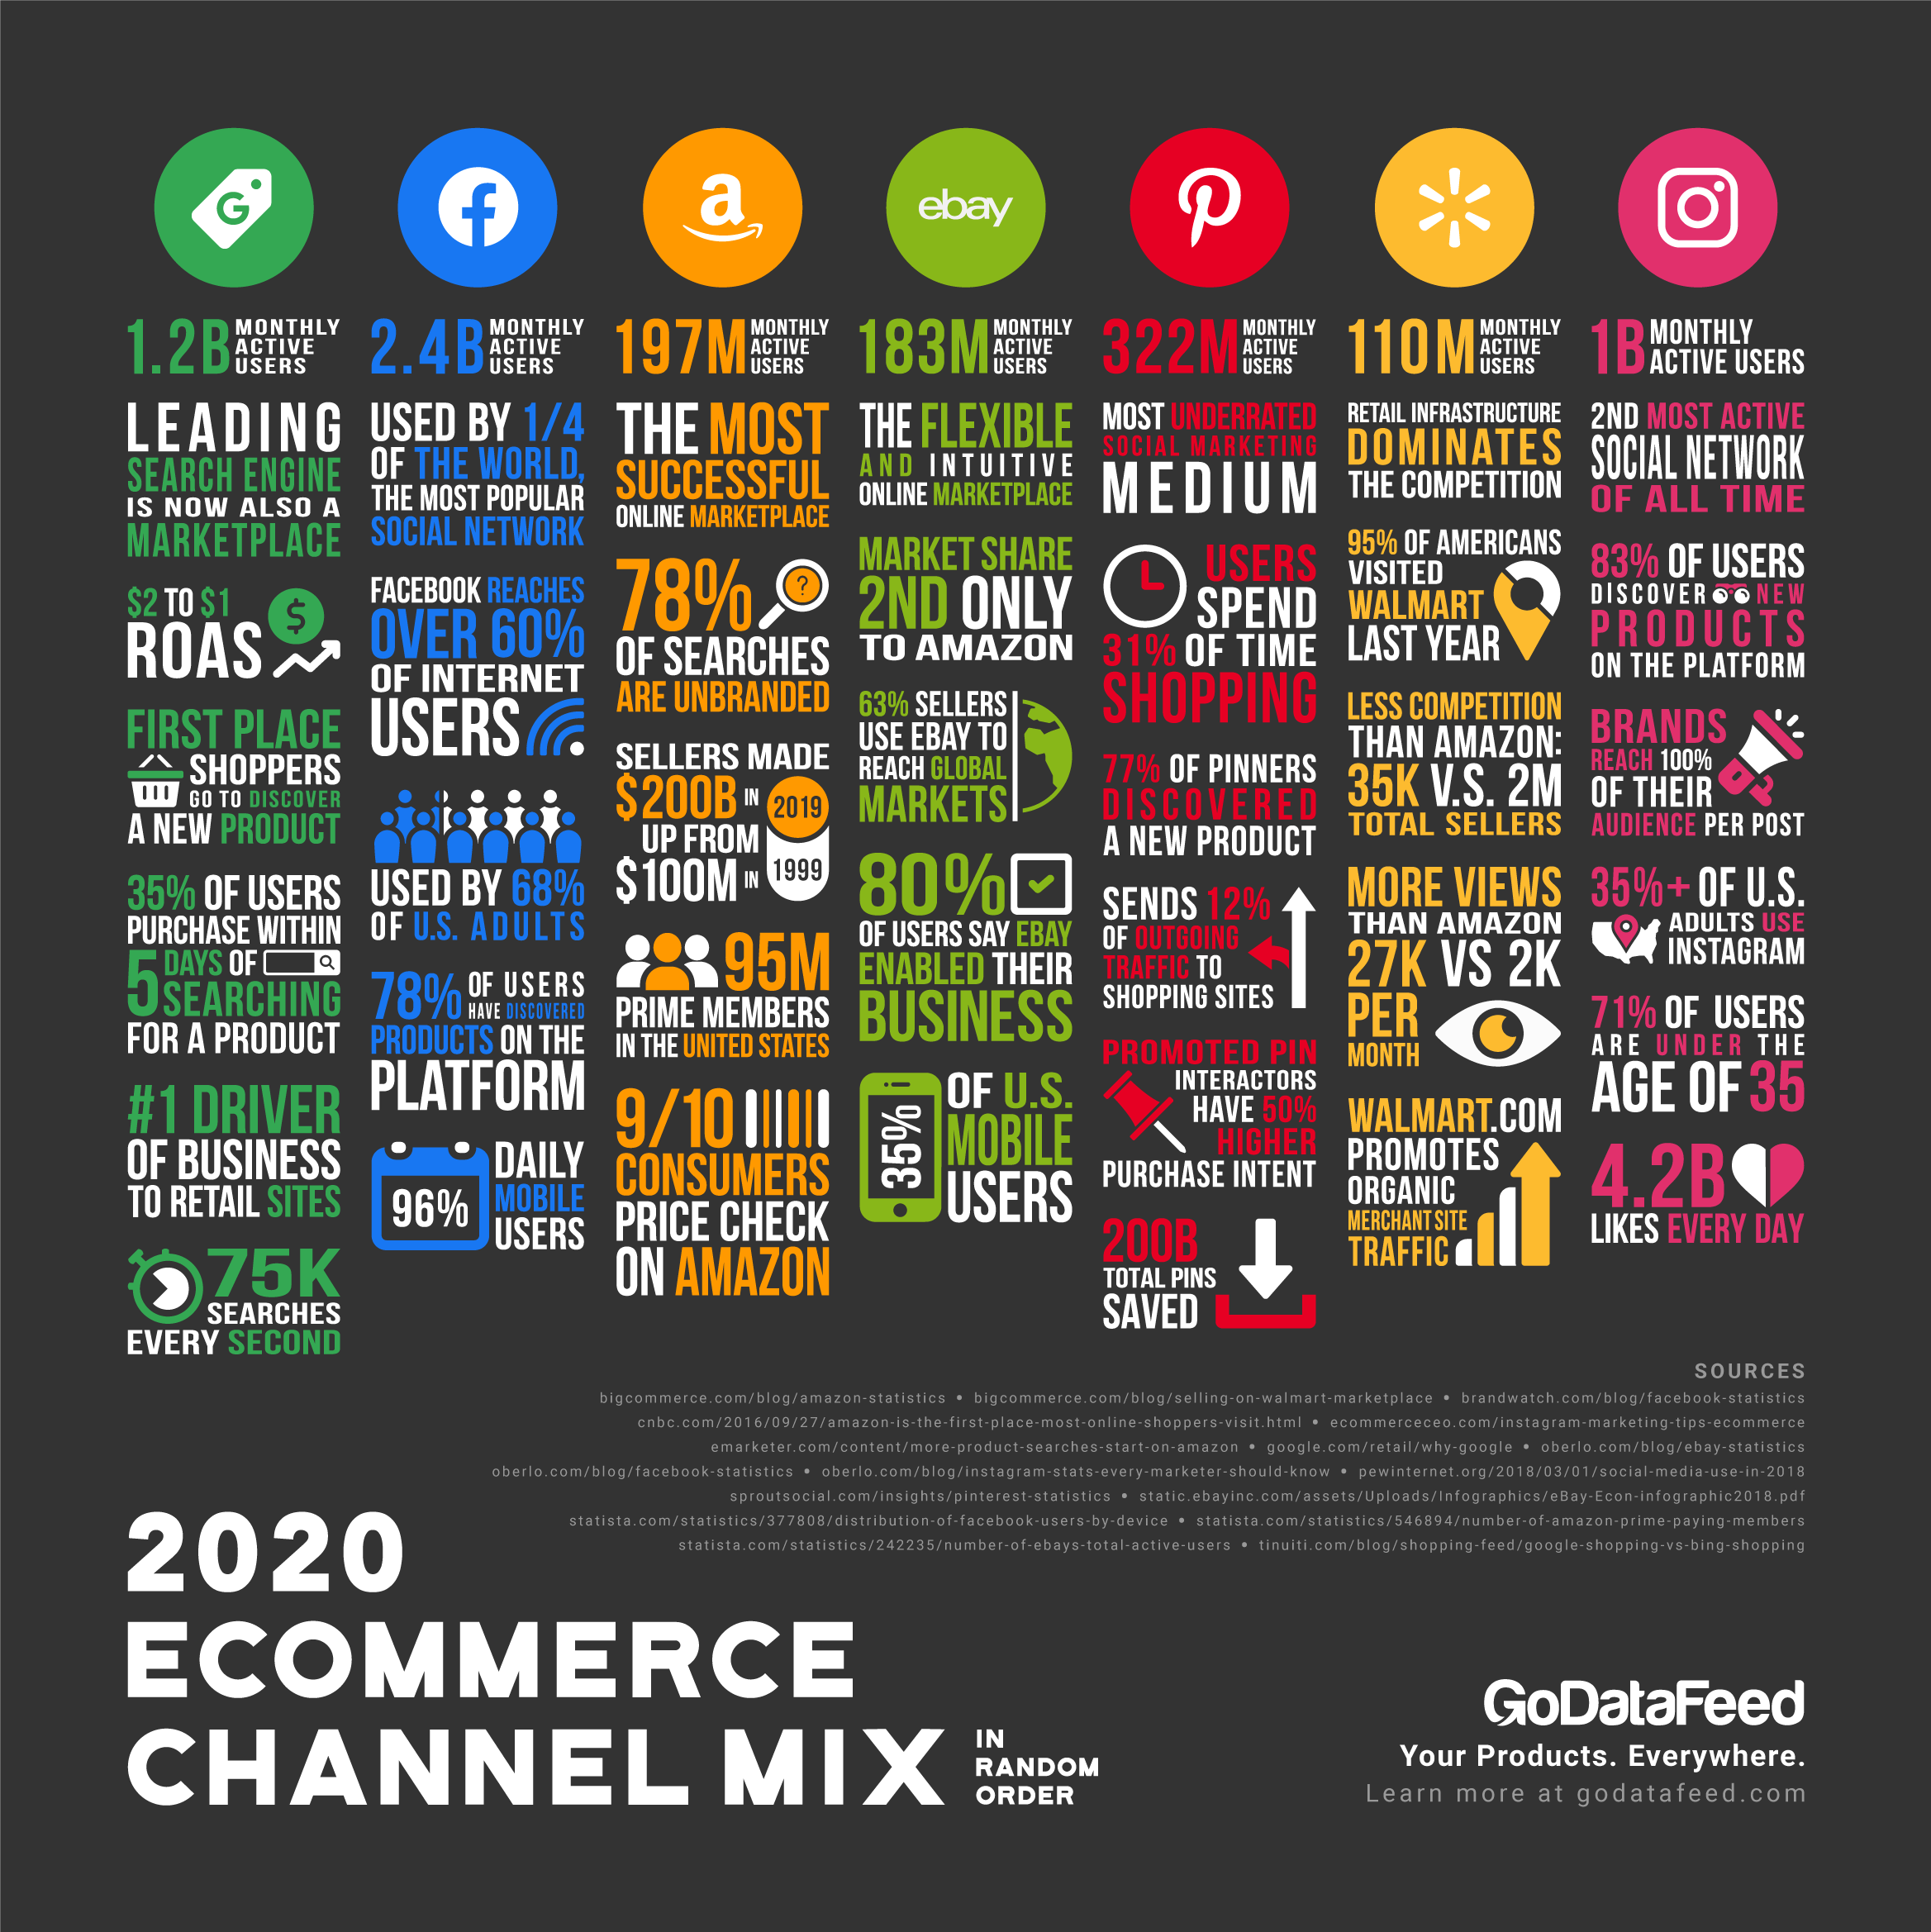 what are the best channels for ecommerce marketing?